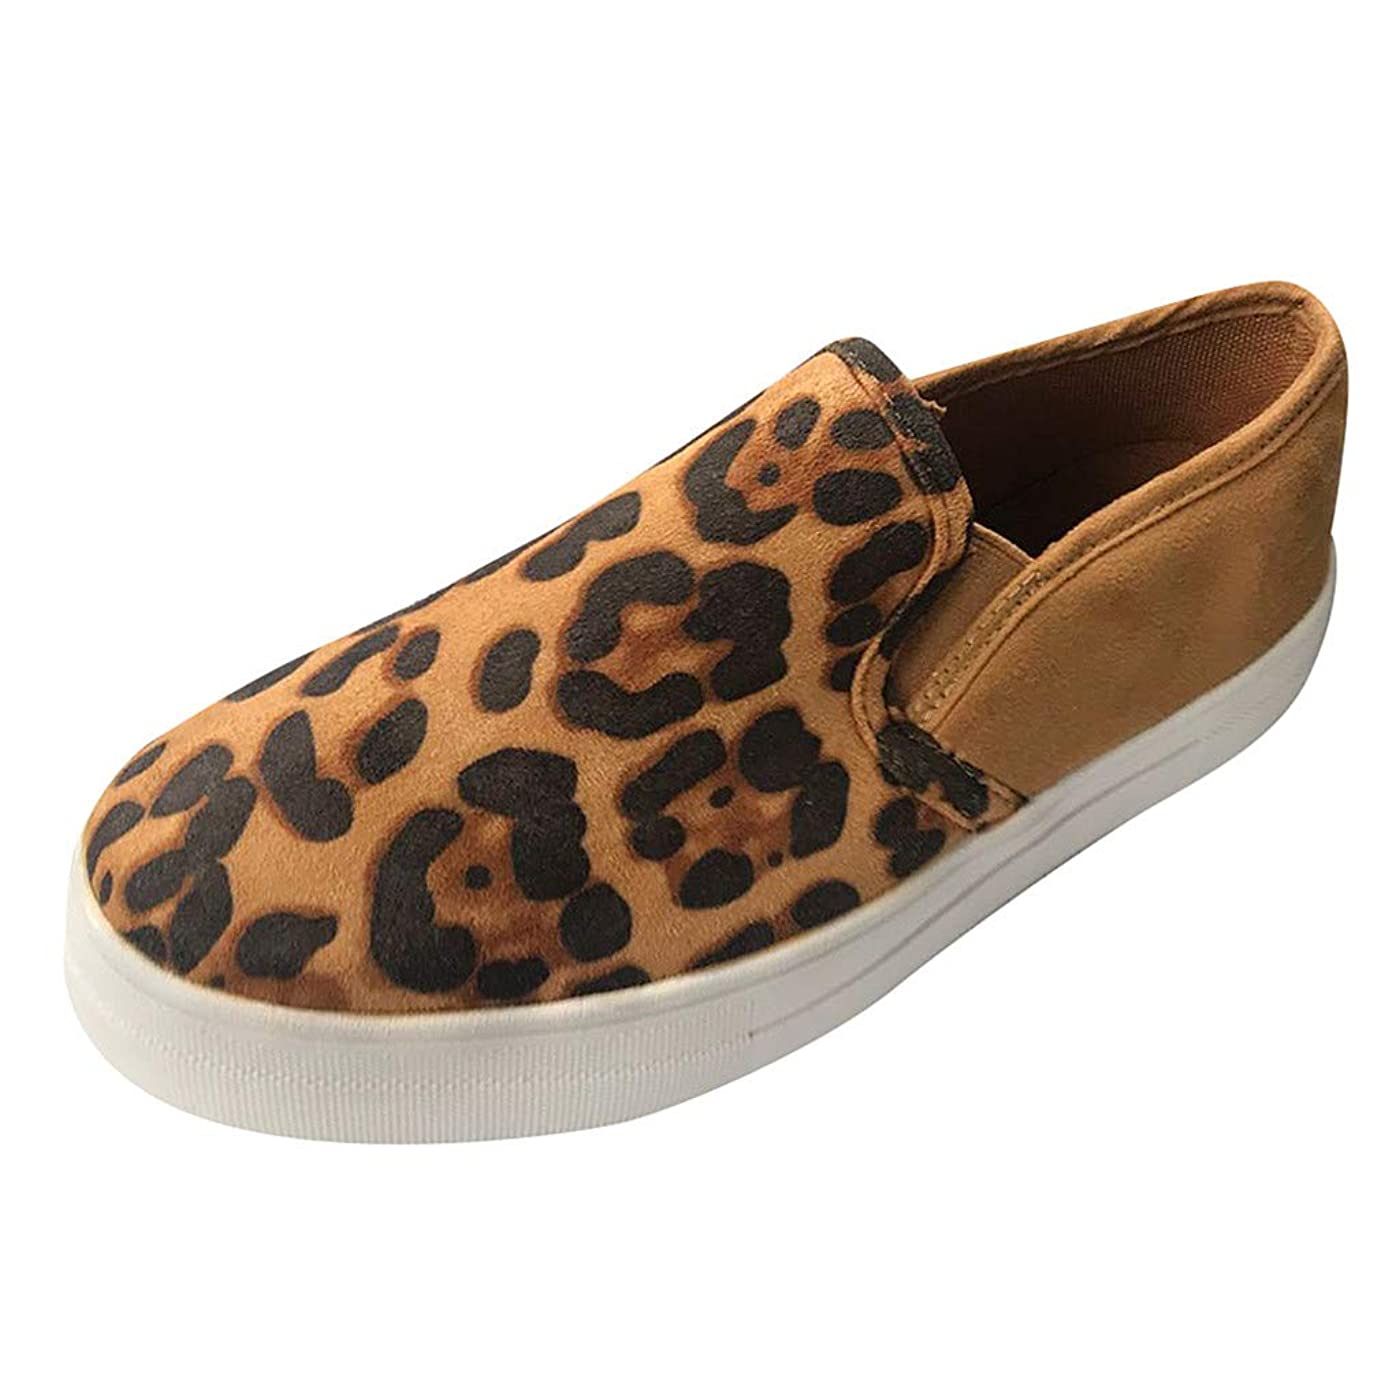 TnaIolral Ladies Canvas Shoes Fashion Leopard Casual Loafers Roman Cloth Sneaker oglg376157267415